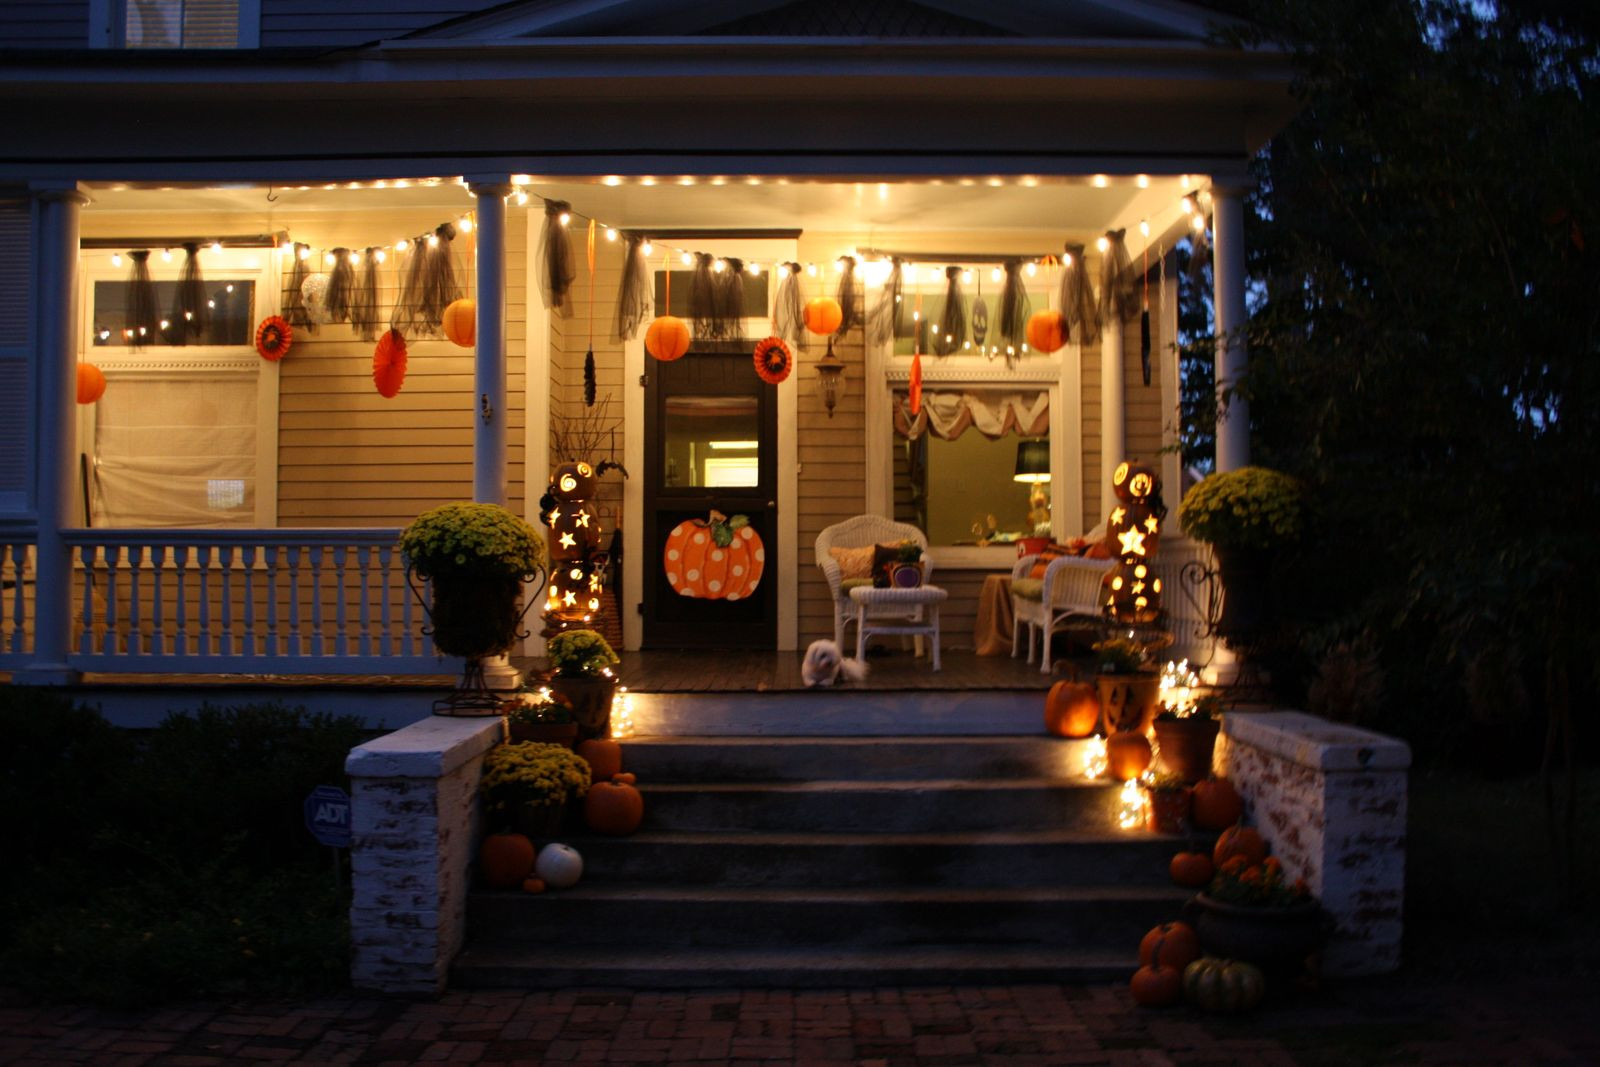 Porch Decorations For Halloween  Our Southern Nest Whimsical Halloween Decorations